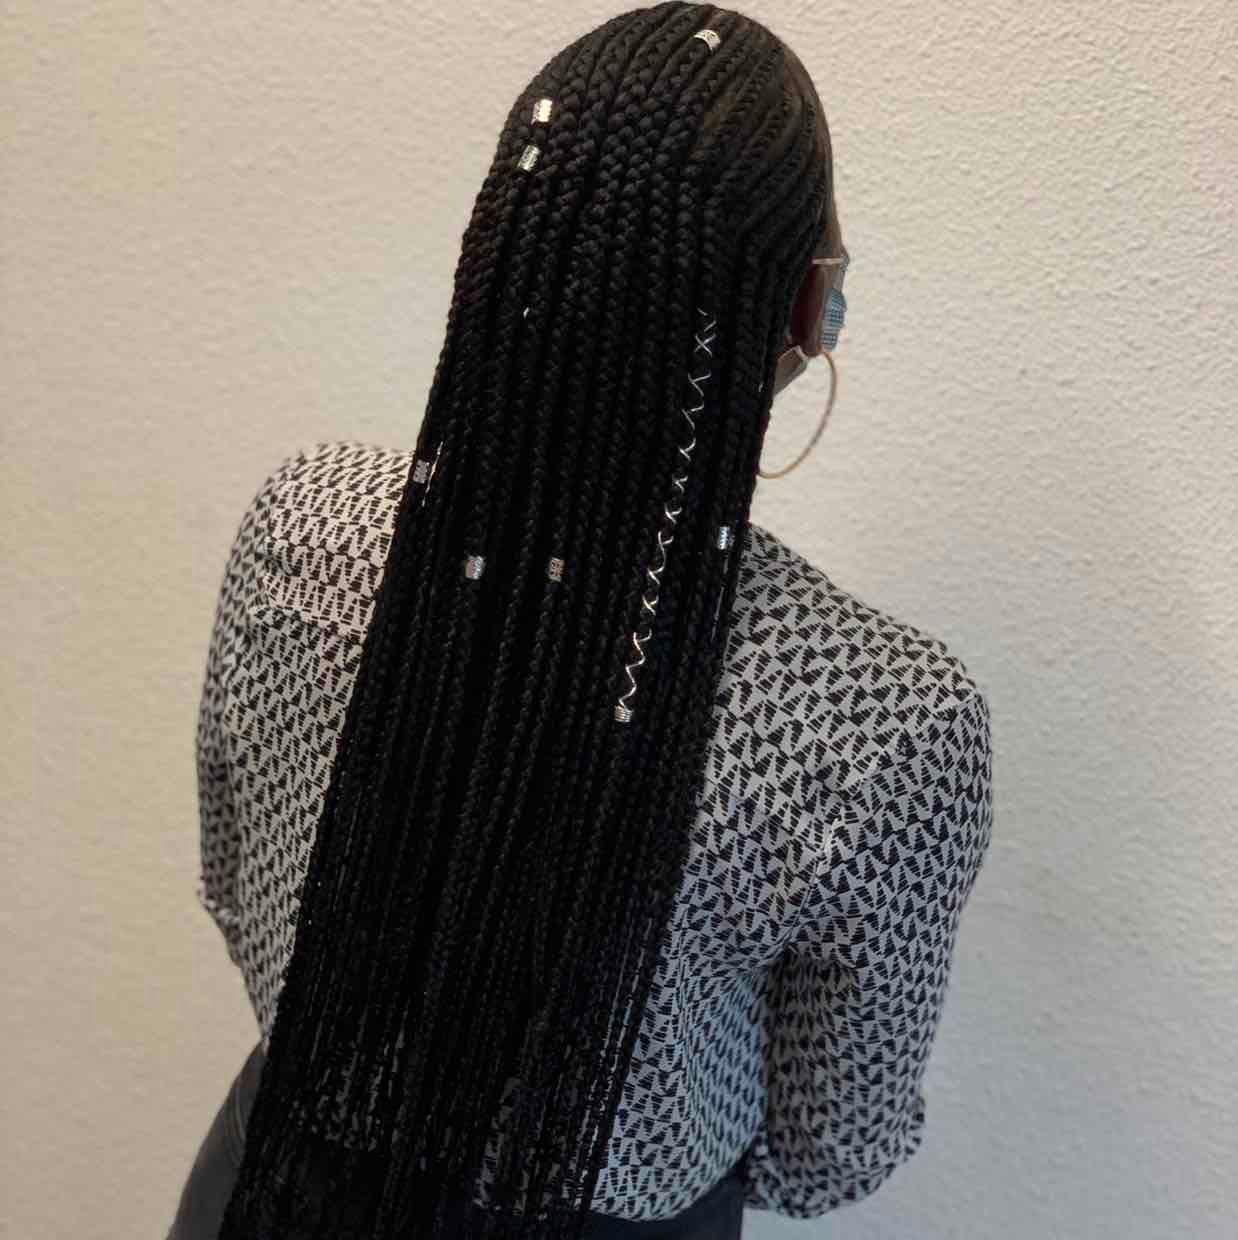 salon de coiffure afro tresse tresses box braids crochet braids vanilles tissages paris 75 77 78 91 92 93 94 95 ERBUOJCH